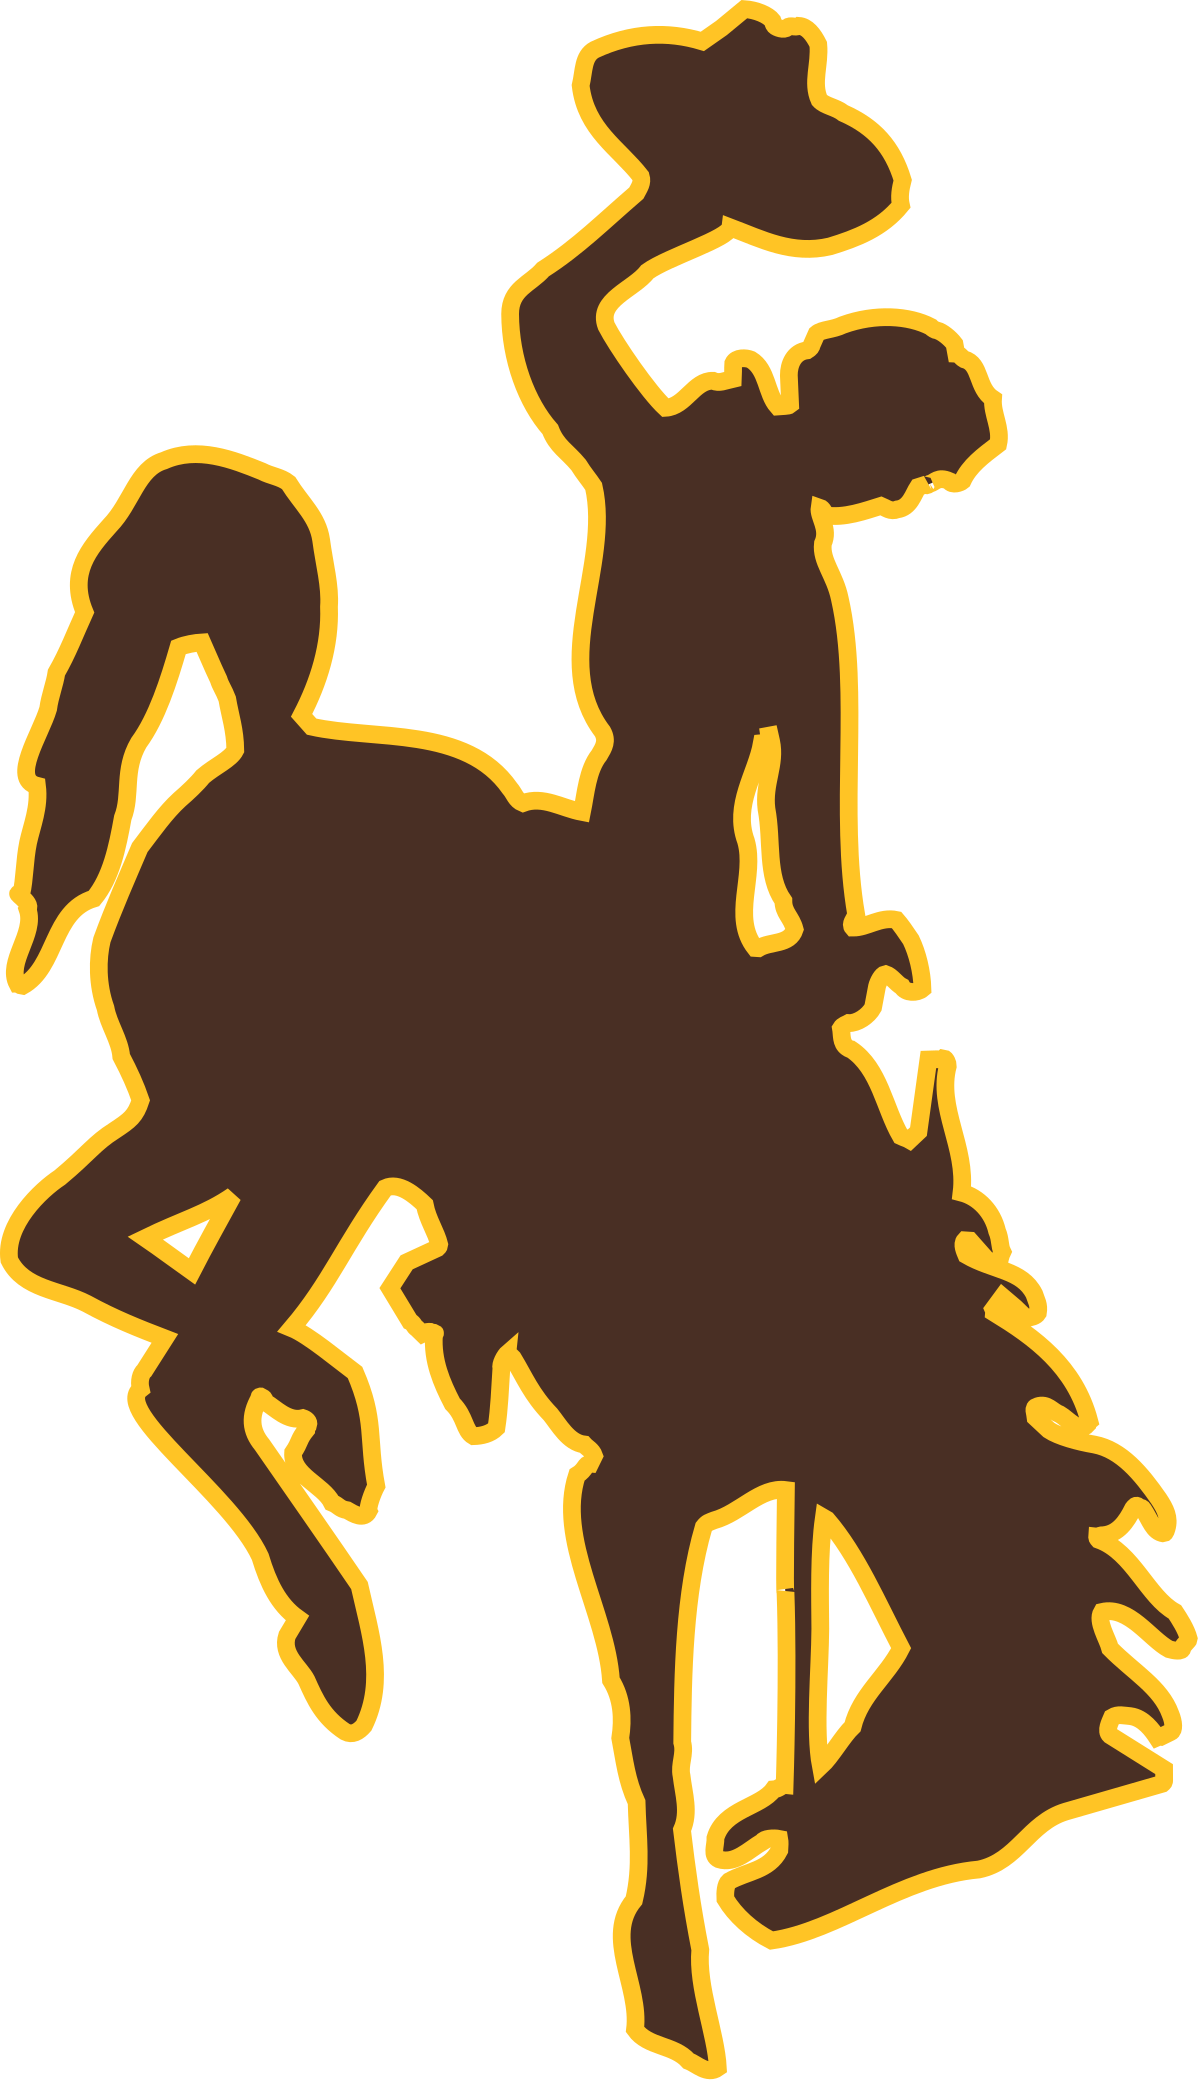 Cowboy clipart bluff. Horse and rider silhouette